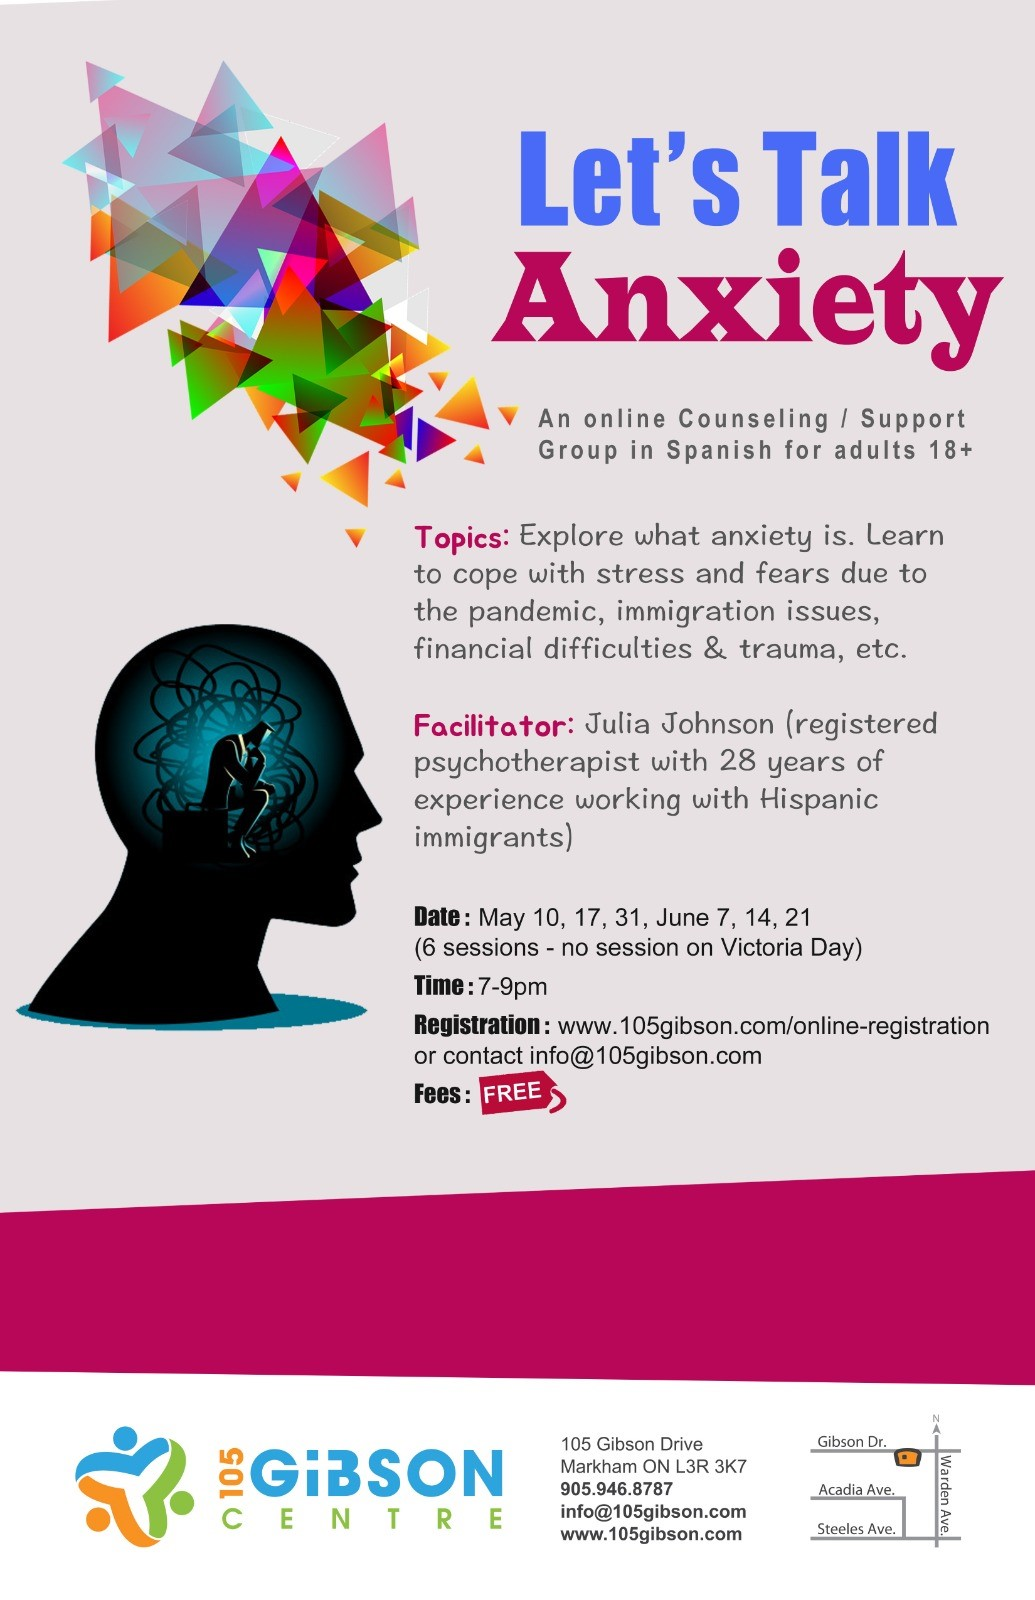 Let's Talk Anxiety Poster